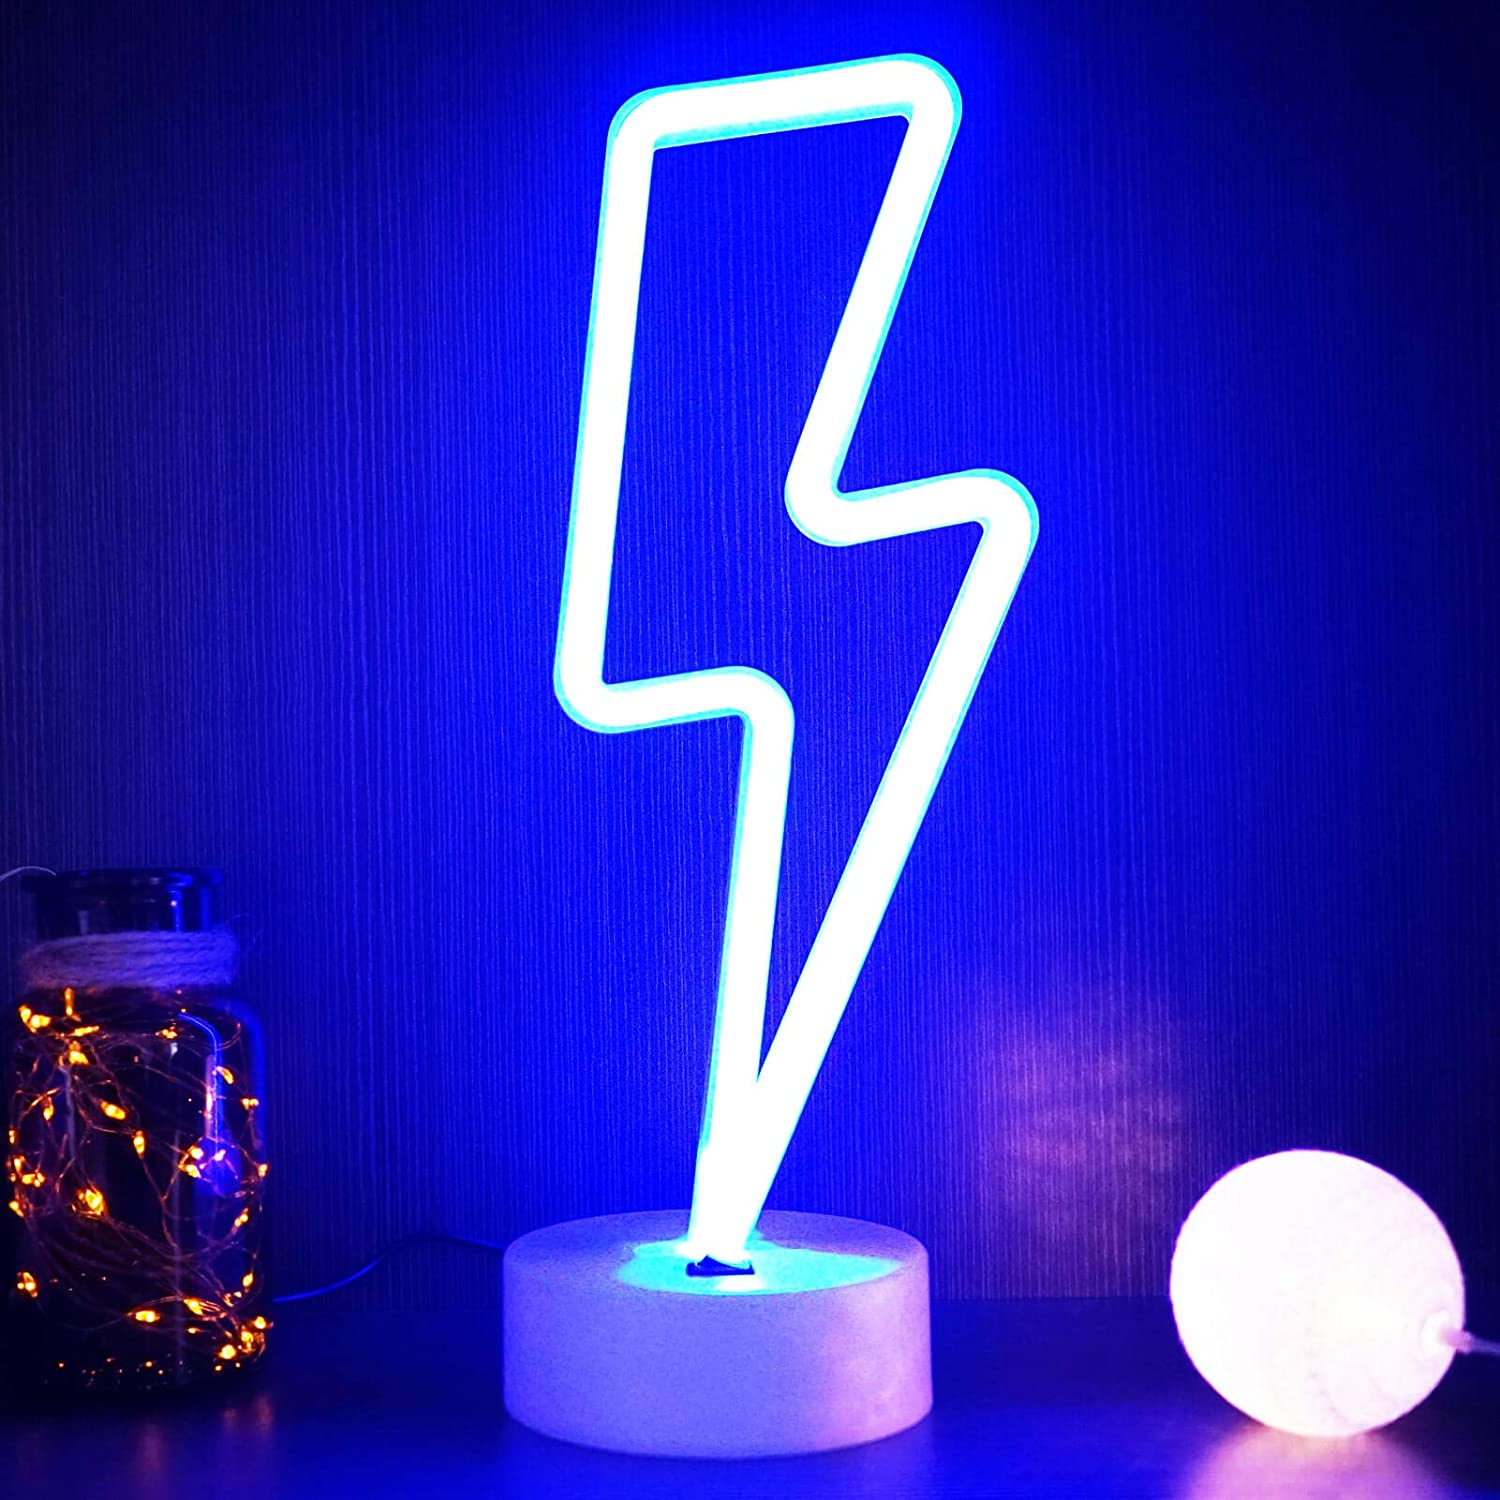 Yiviyar Lightning Bolt Neon Sign Usb Charging Battery Blue Neon Light Cool Things Kids Room Decor For Boys Bedroom Lighting Cool Lamps For Teens Bedroom Cool Gadgets Cool Room Decor Lightning Amazon Co Uk Lighting